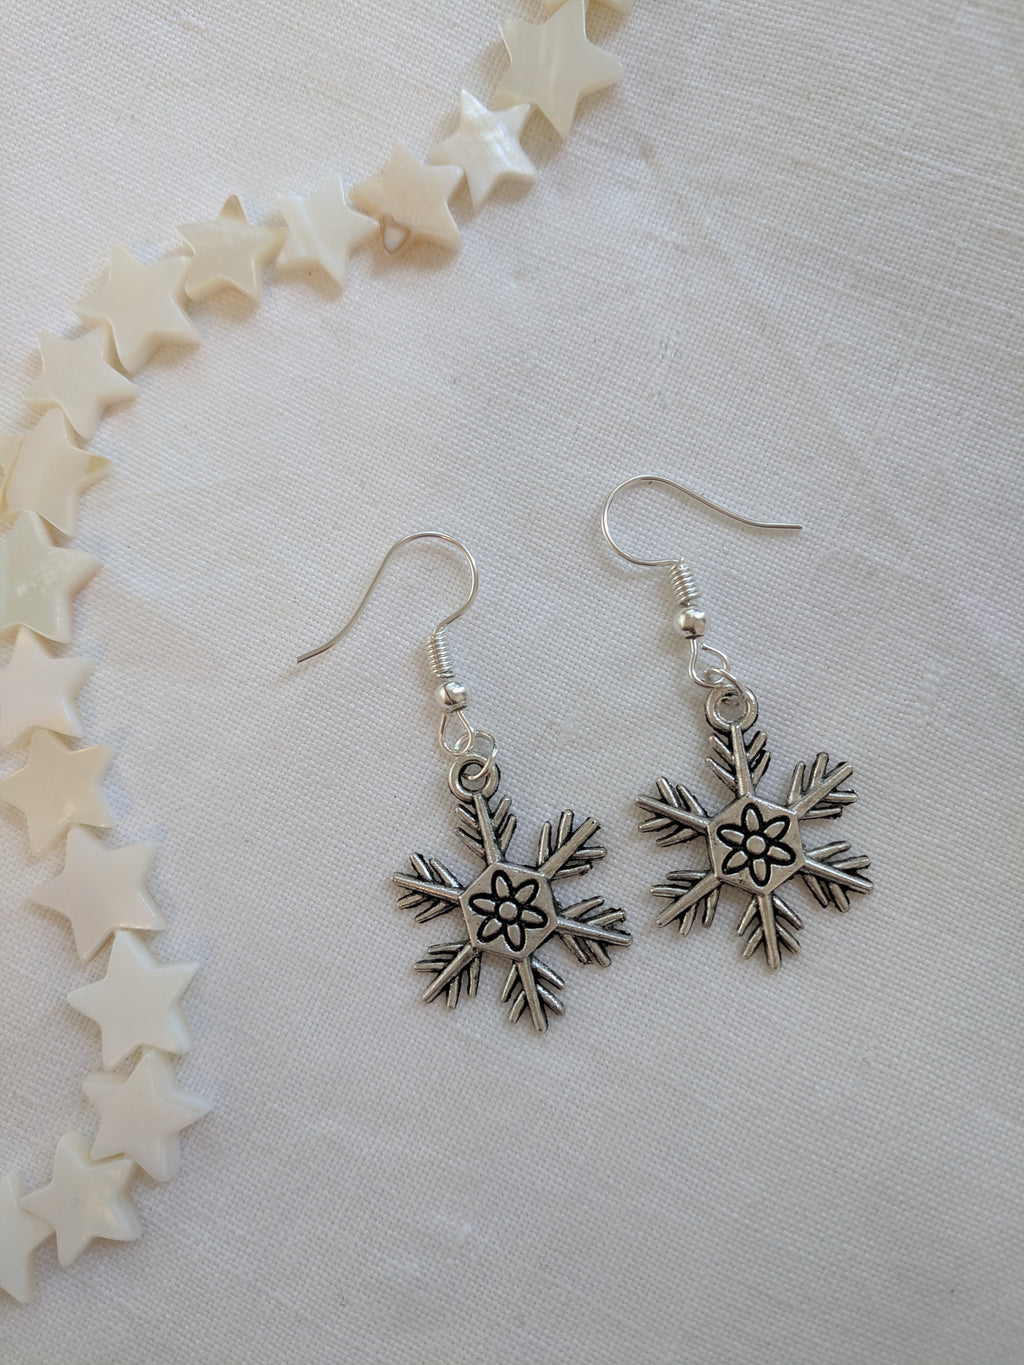 Snow drop earrings